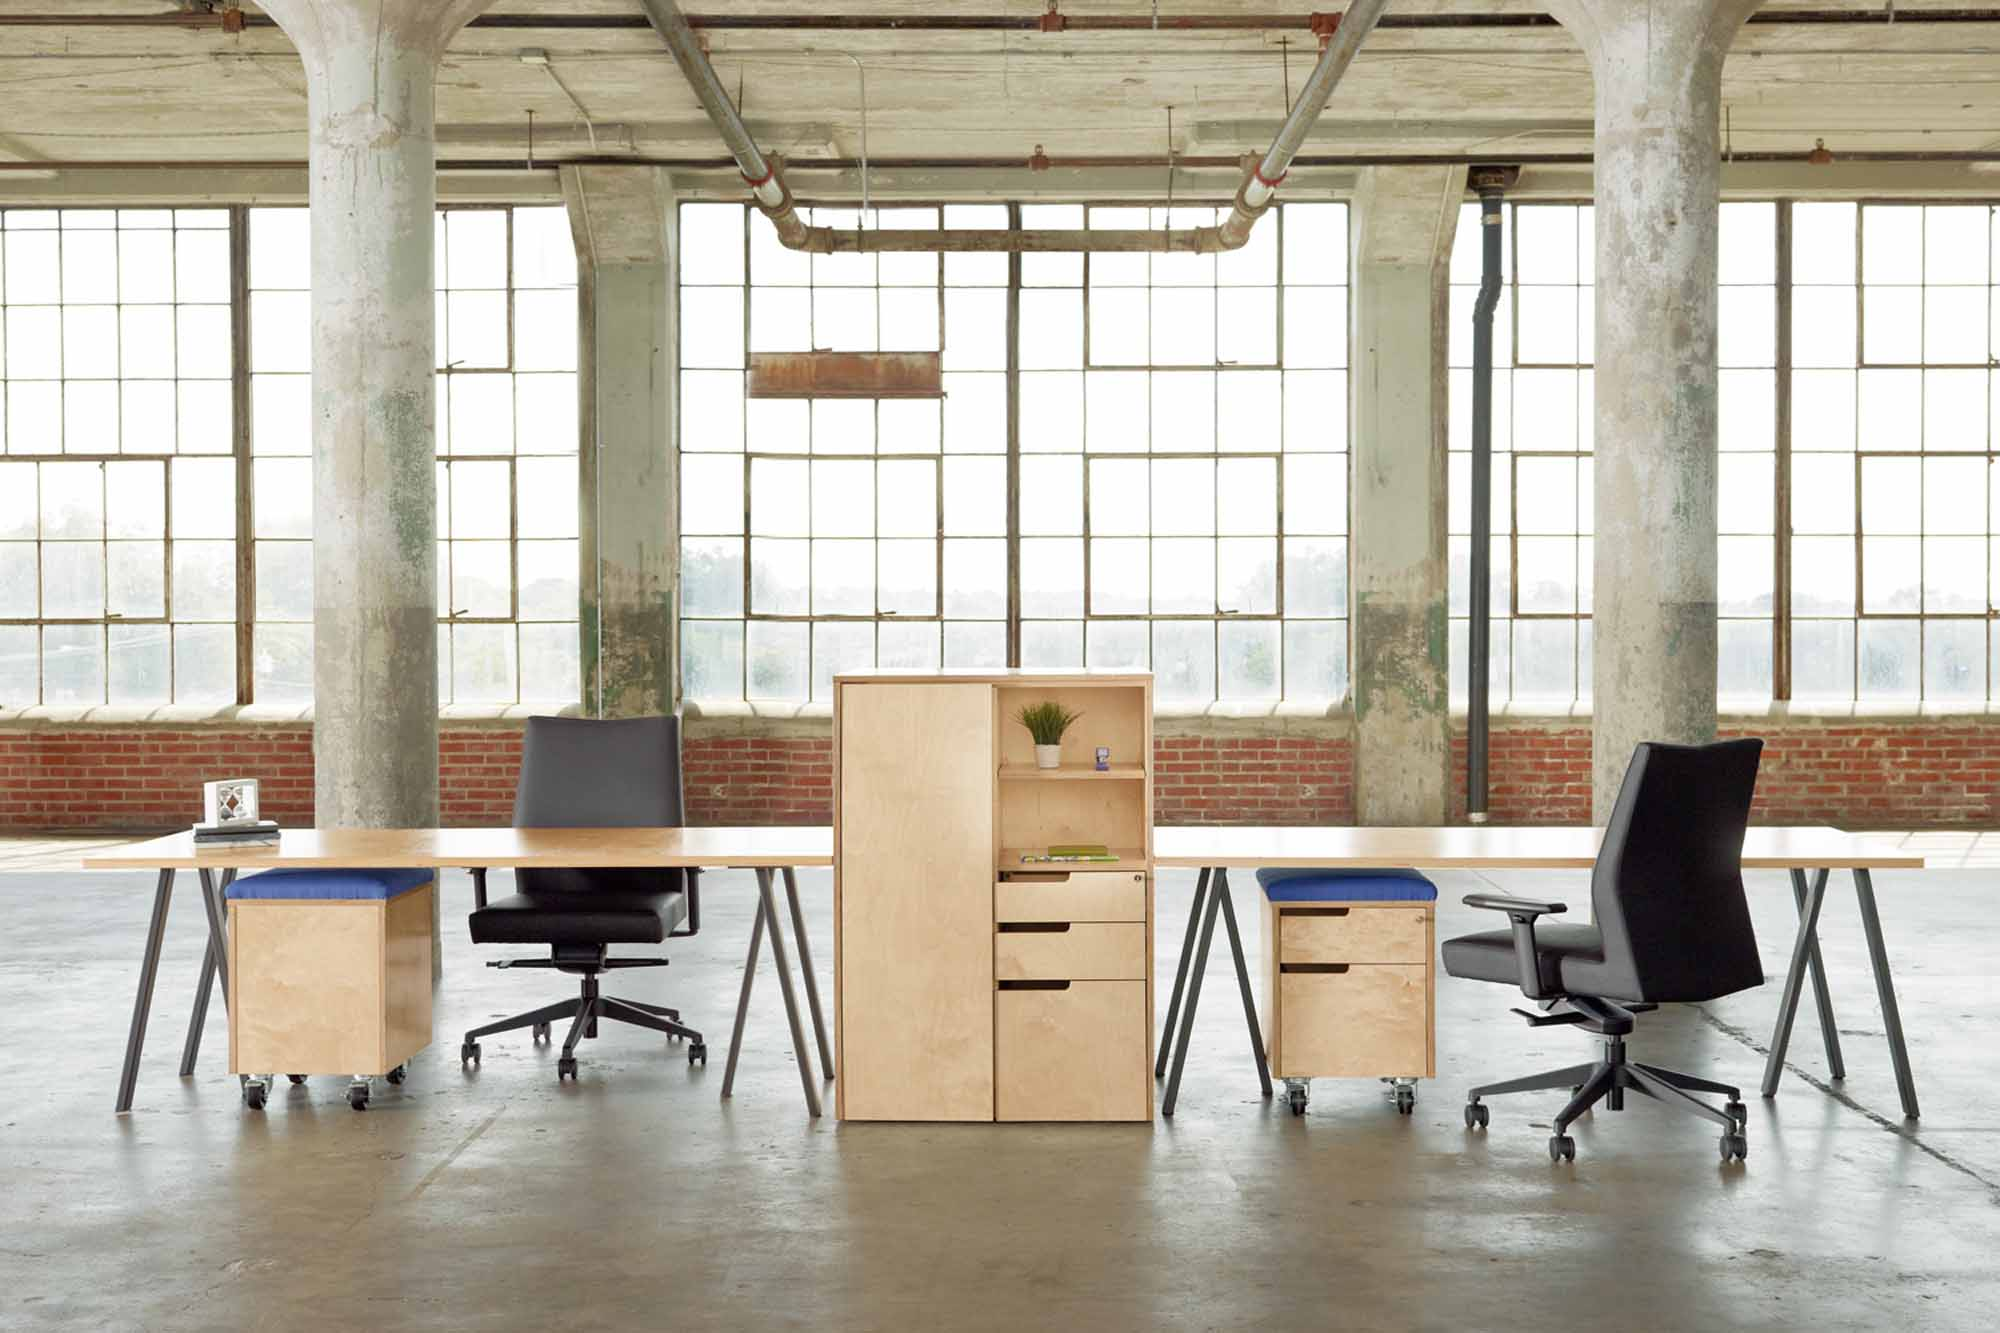 Tables are keeping up with the demand in today's plugged-in, mobile workplaces.